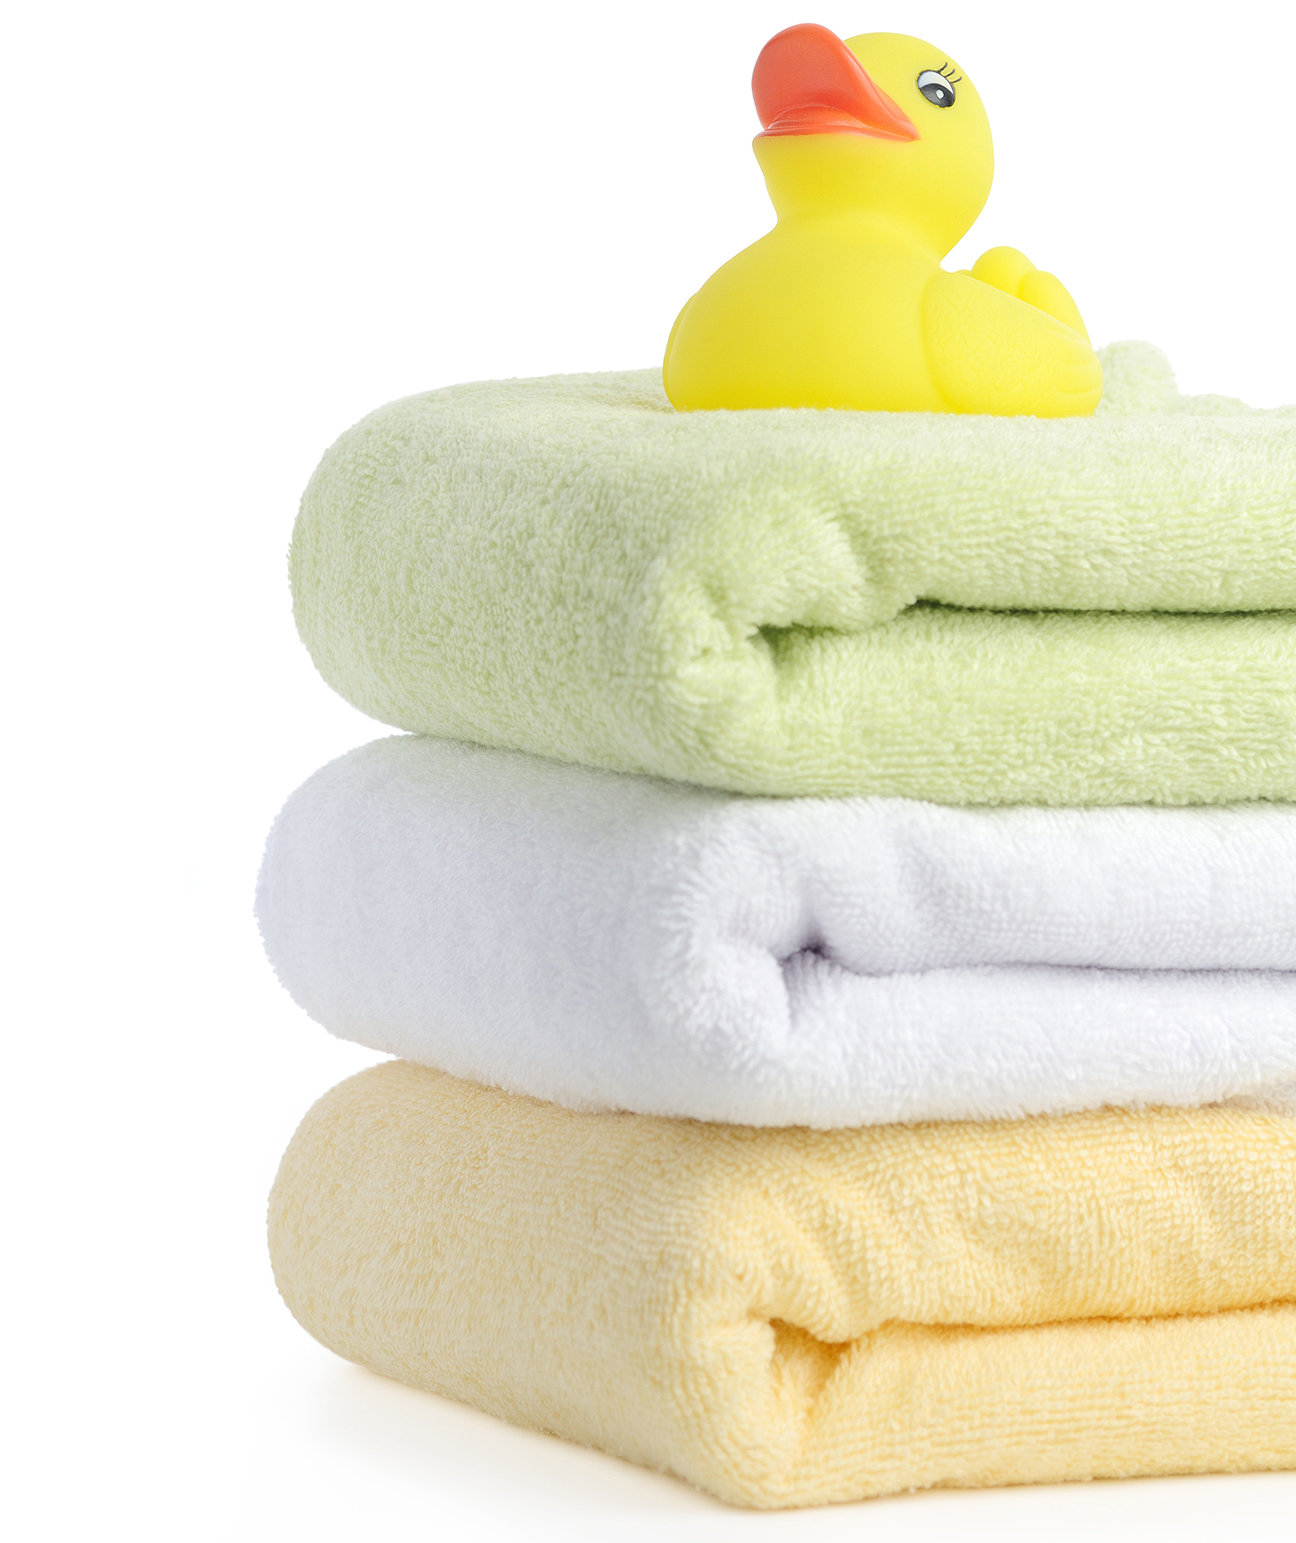 towels-rubber-duckie